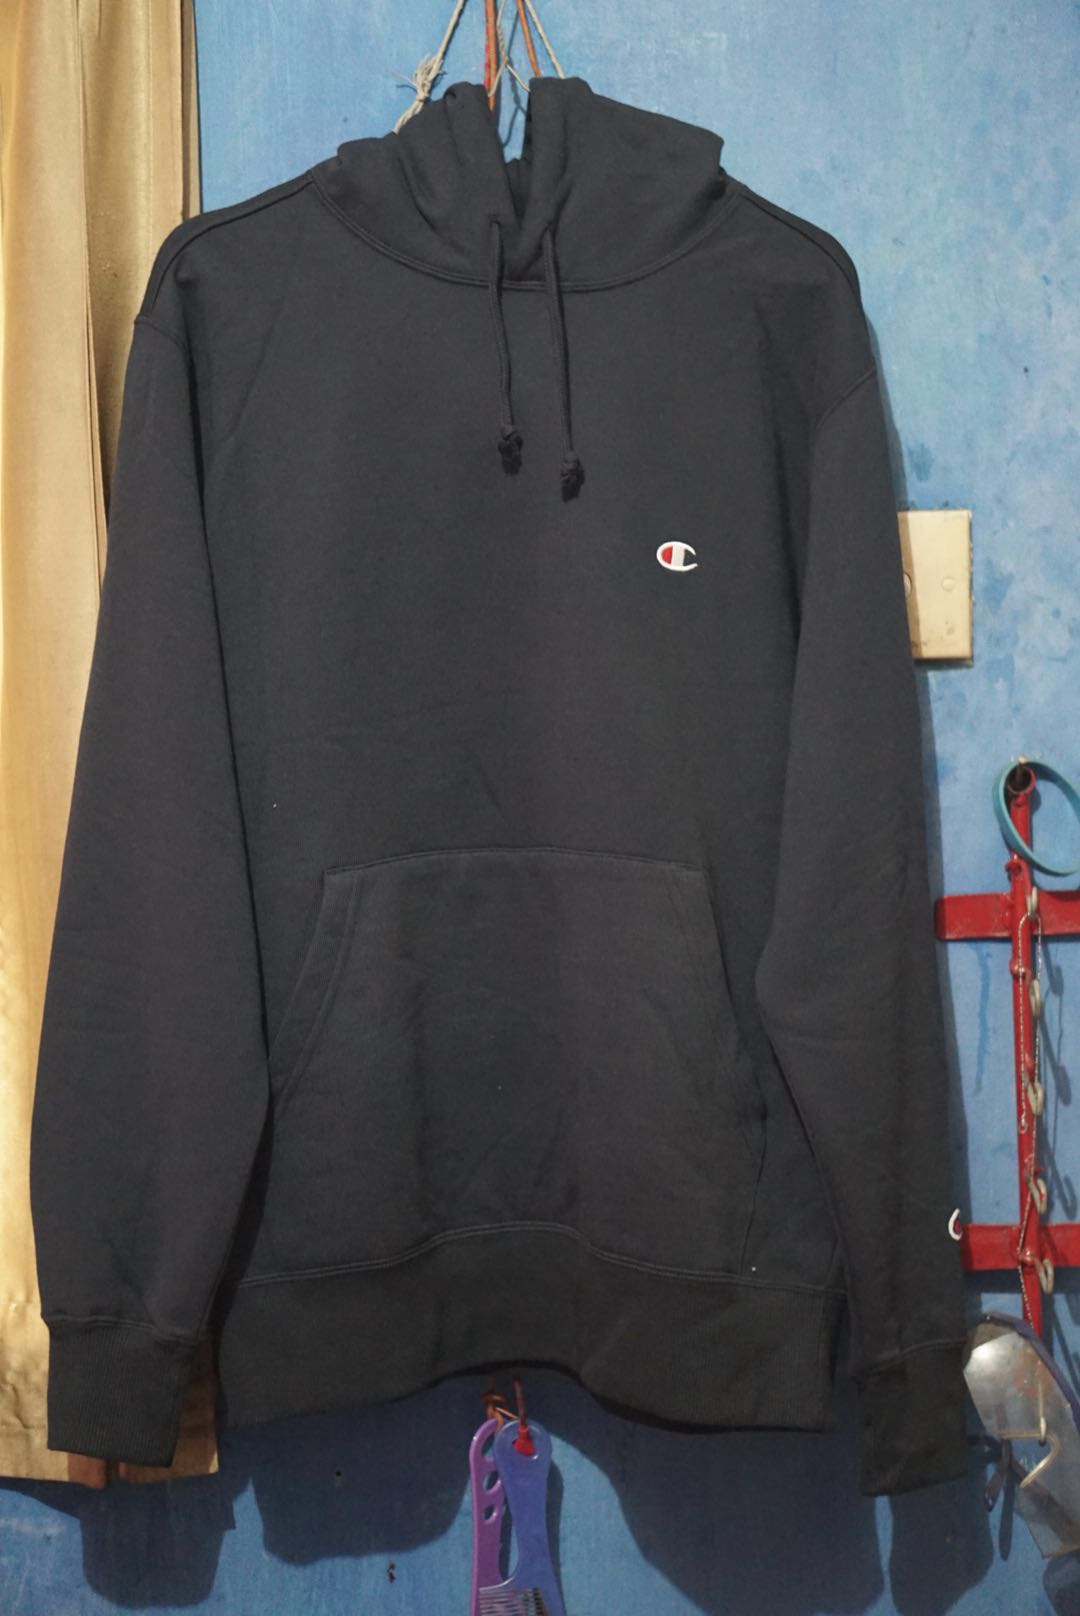 7e227a68e60 Hoodie Champion original not supreme huf bape